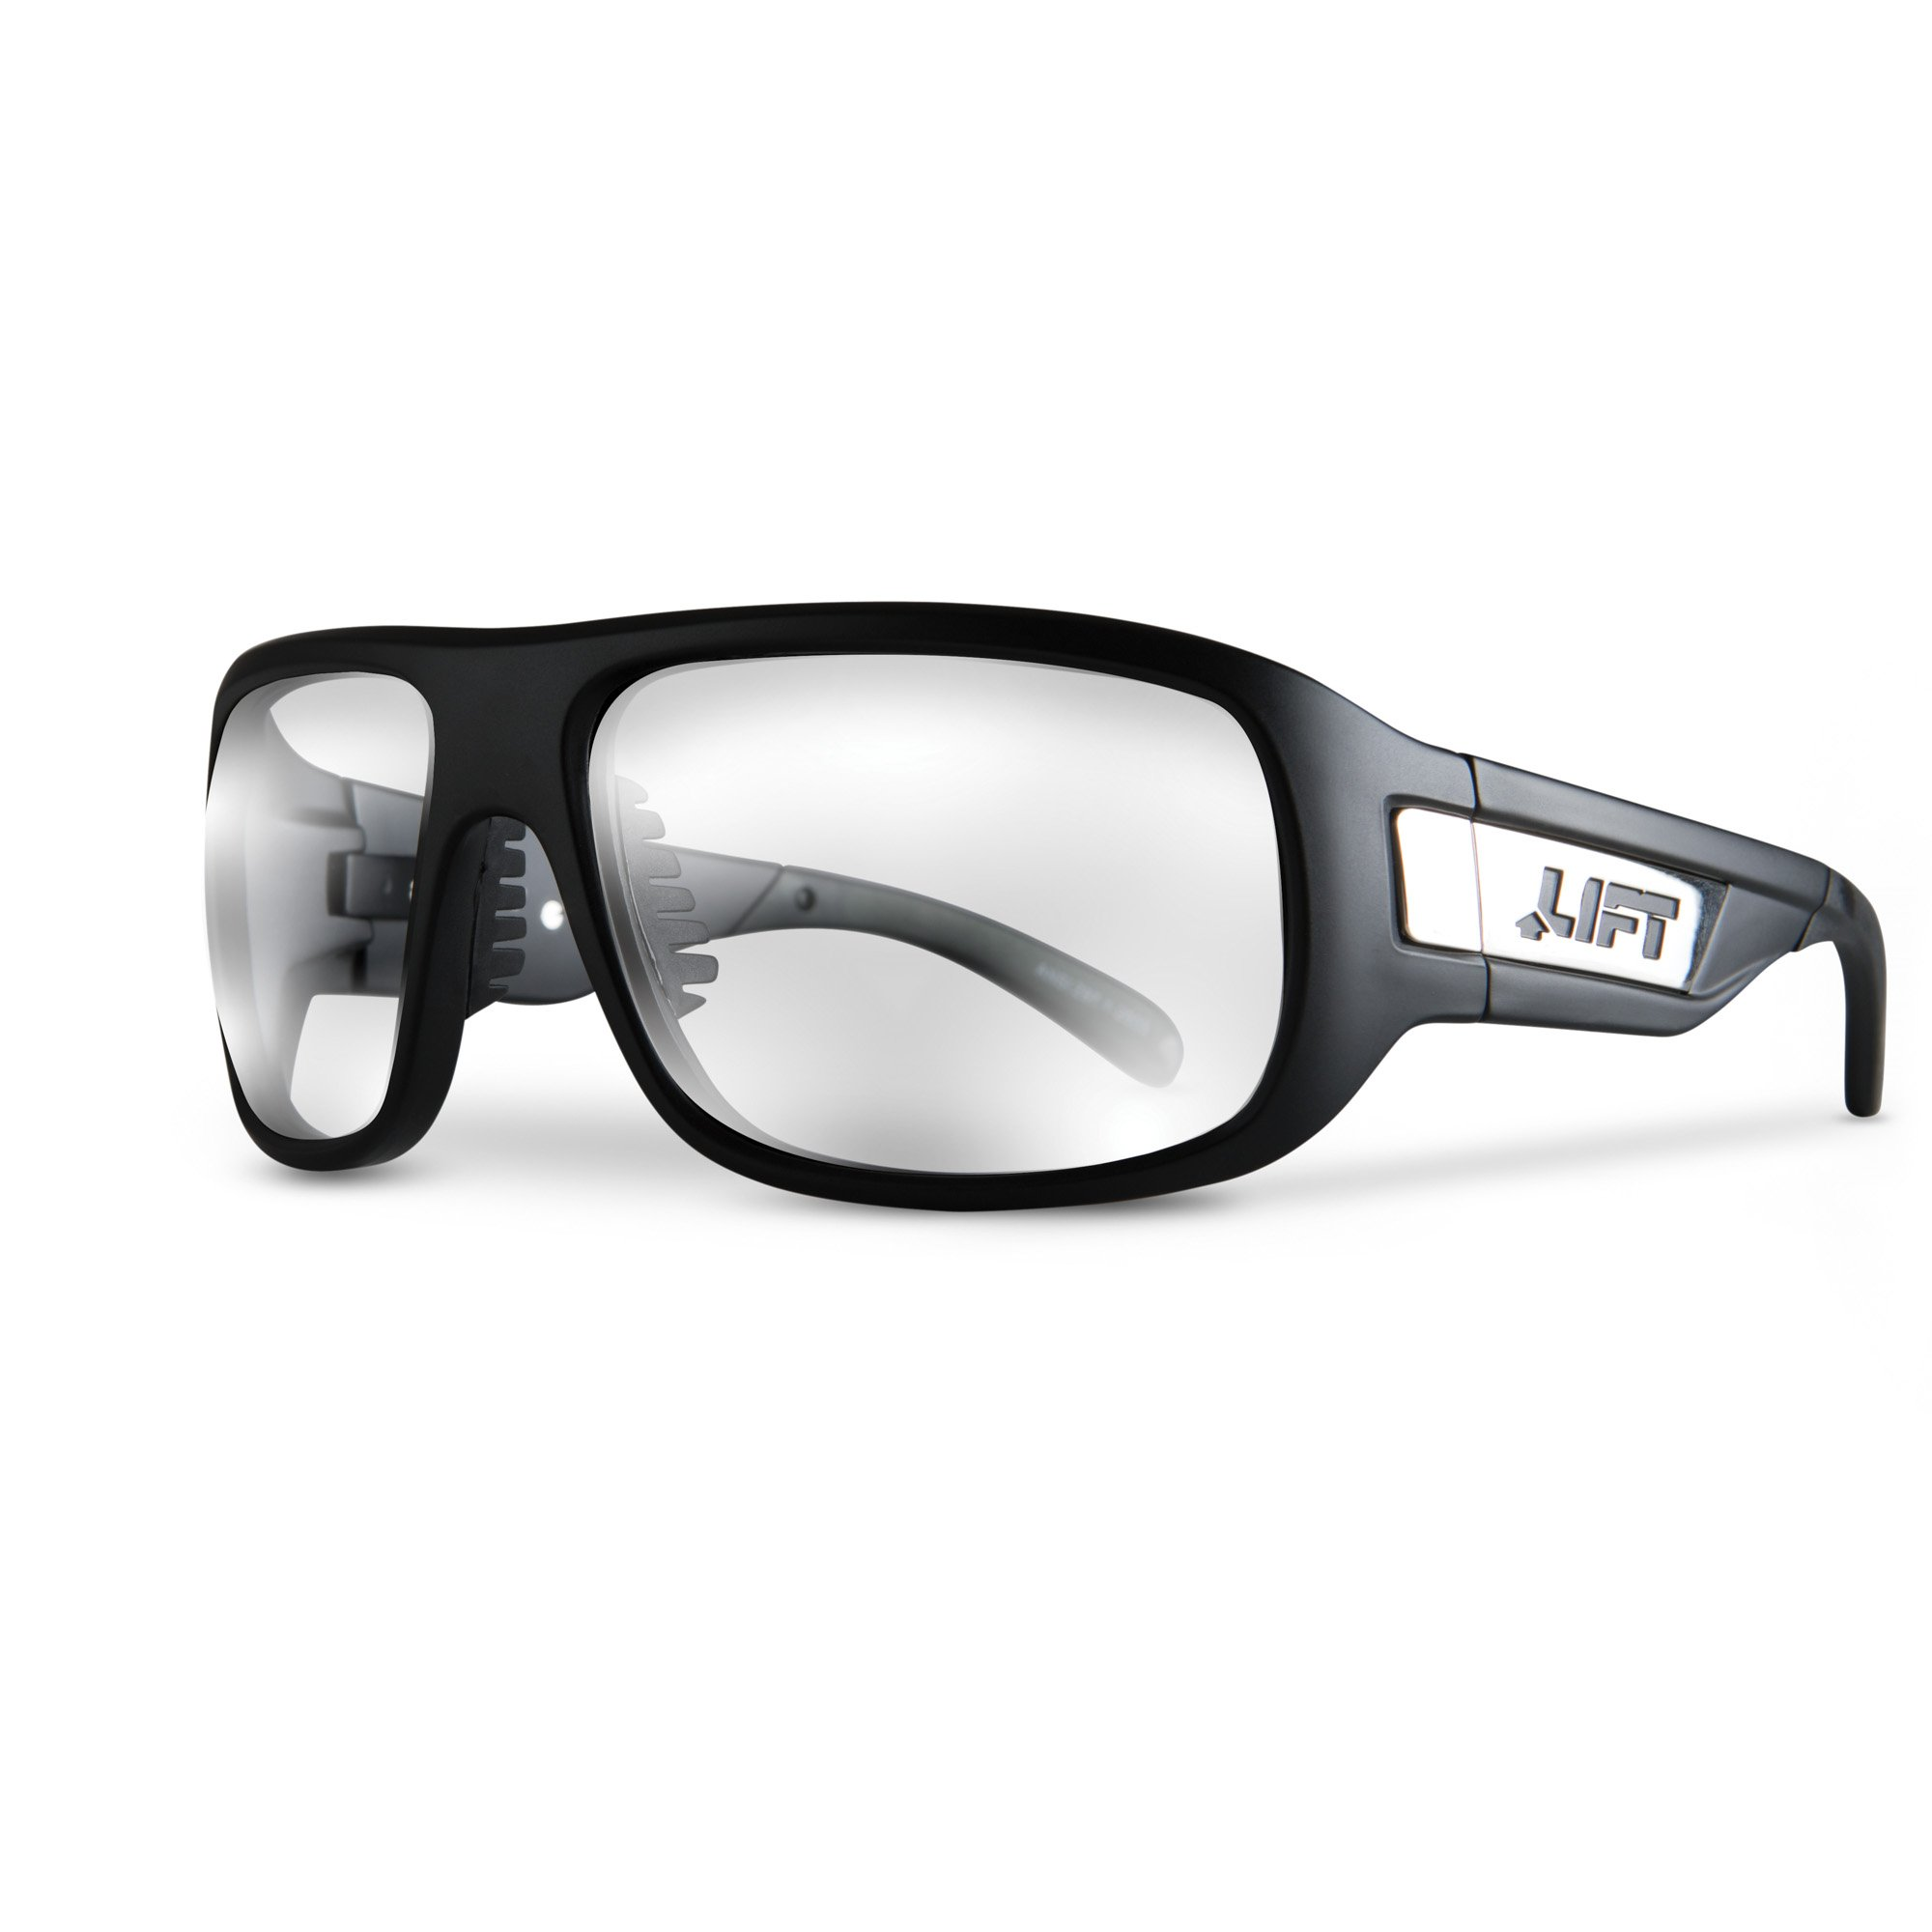 LIFT Safety BOLD One Size Safety Glasses (Matte Black Frame/Clear Lens) by LIFT Safety